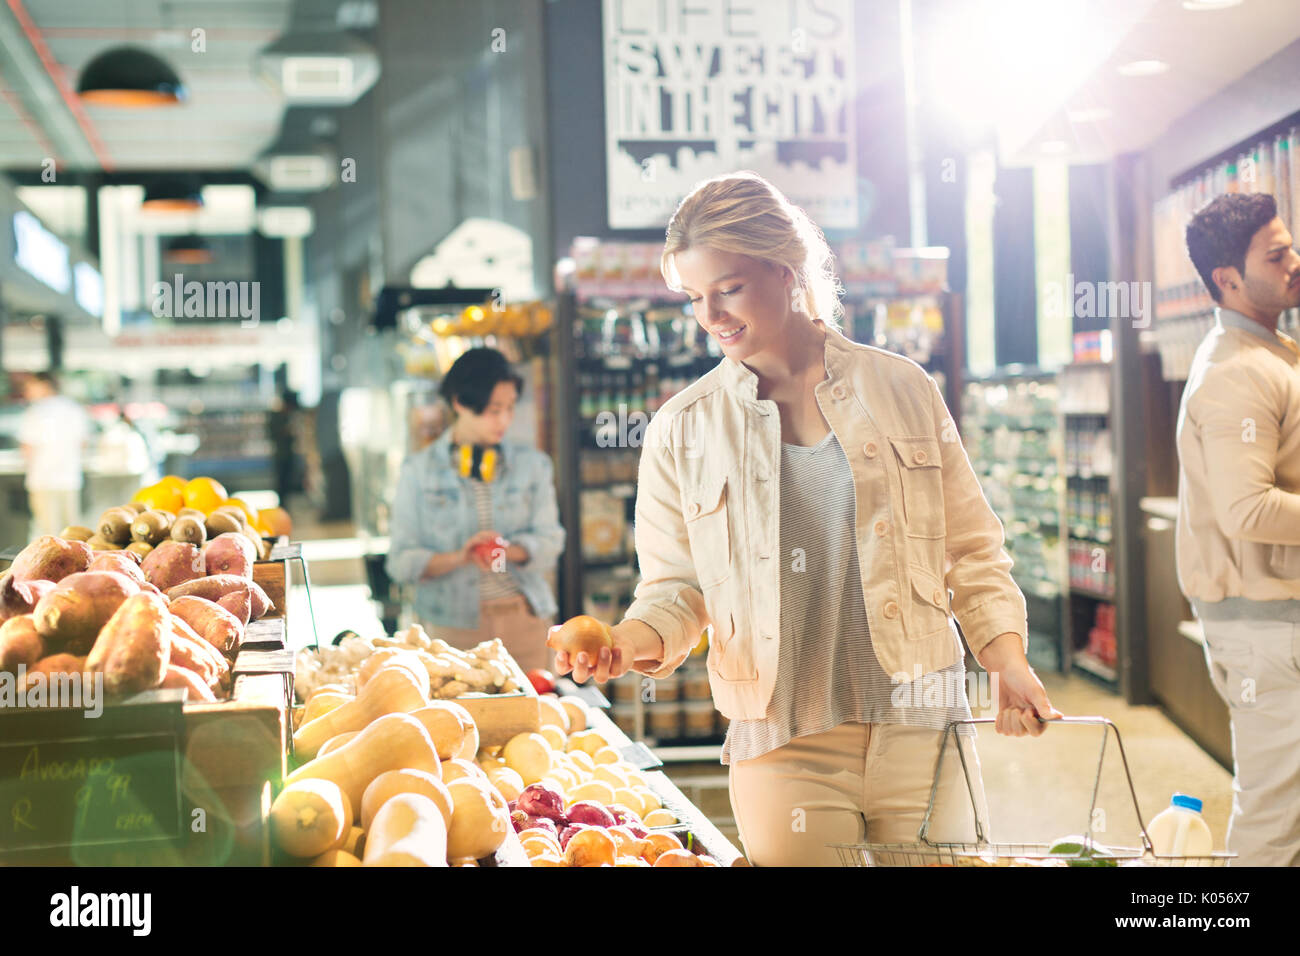 Young woman grocery shopping, browsing produce in market - Stock Image